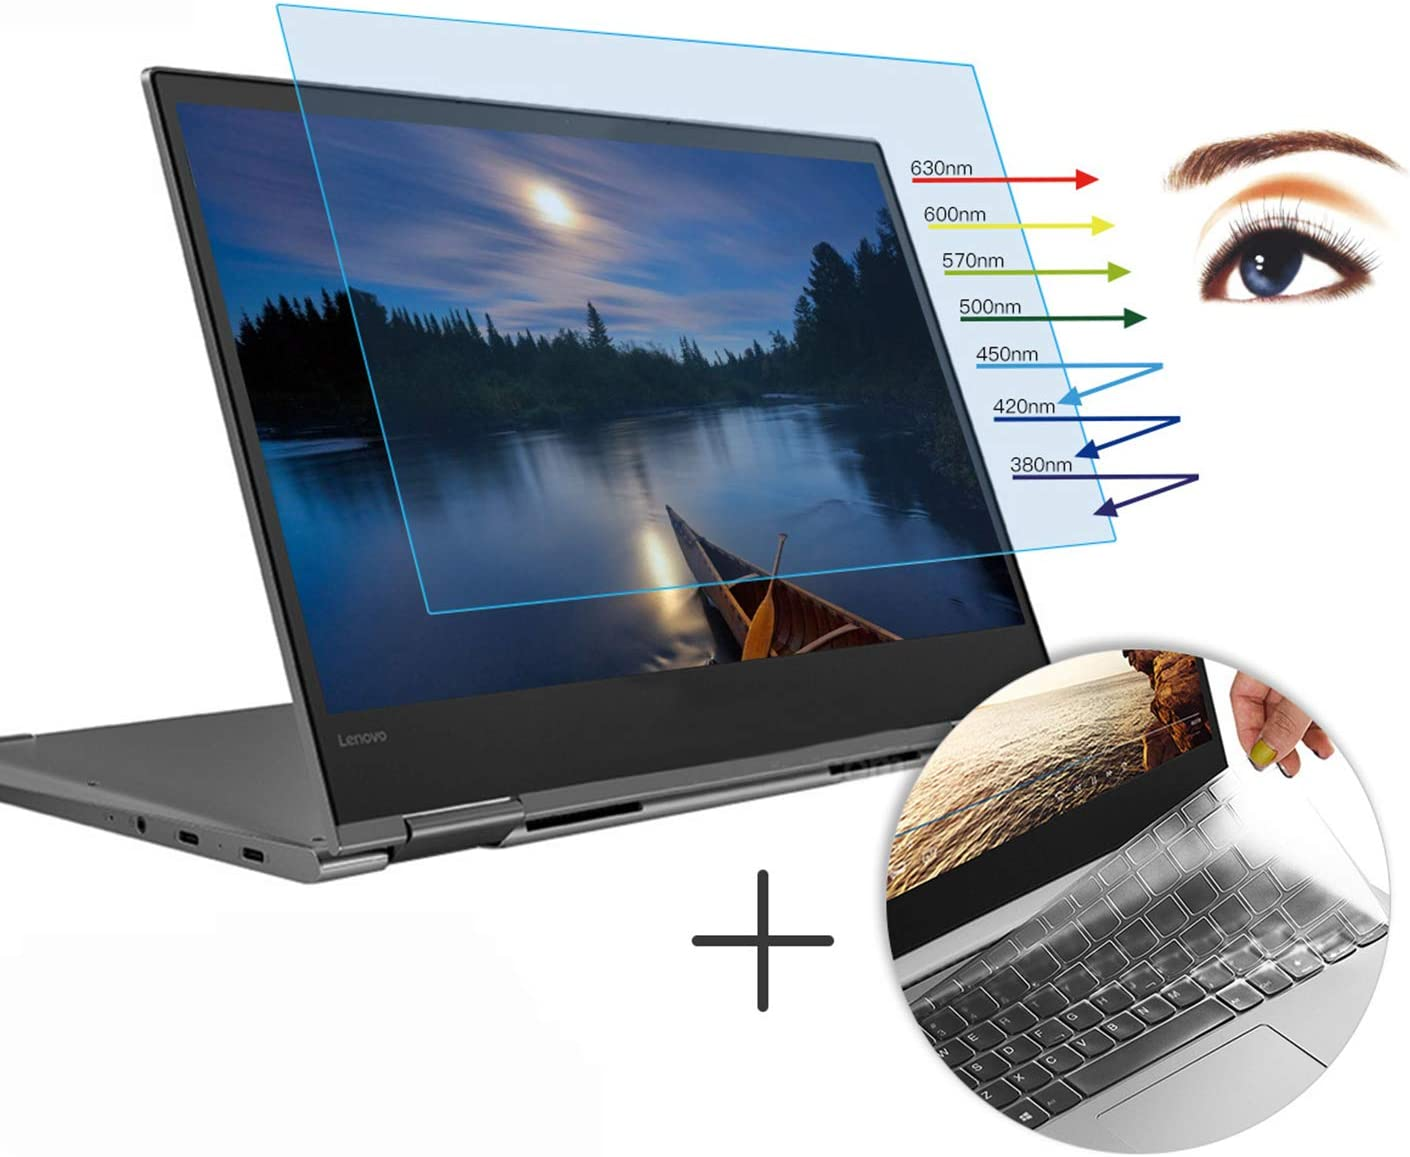 CaseBuy Anti-Glare Screen Protector Eye Protection Blue Light Filter for Lenovo Yoga 730 2-in-1 13.3 Inch & Ultra Thin TPU Keyboard Cover Accessories for Yoga 730 13.3